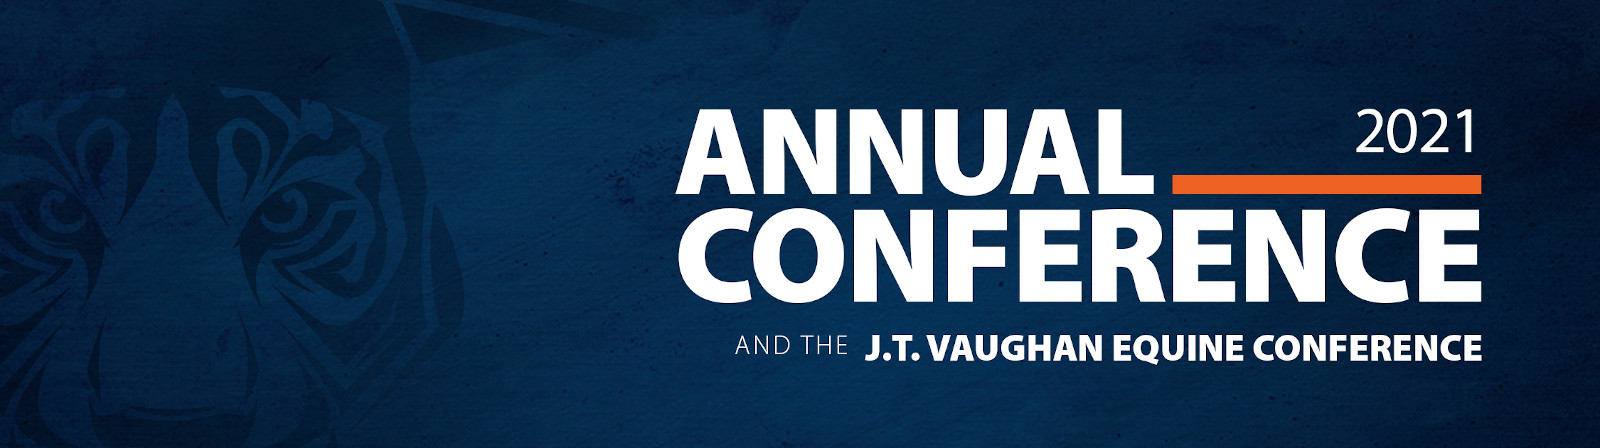 2021 Annual Conference and the J.T. Vaughn Equine Conference